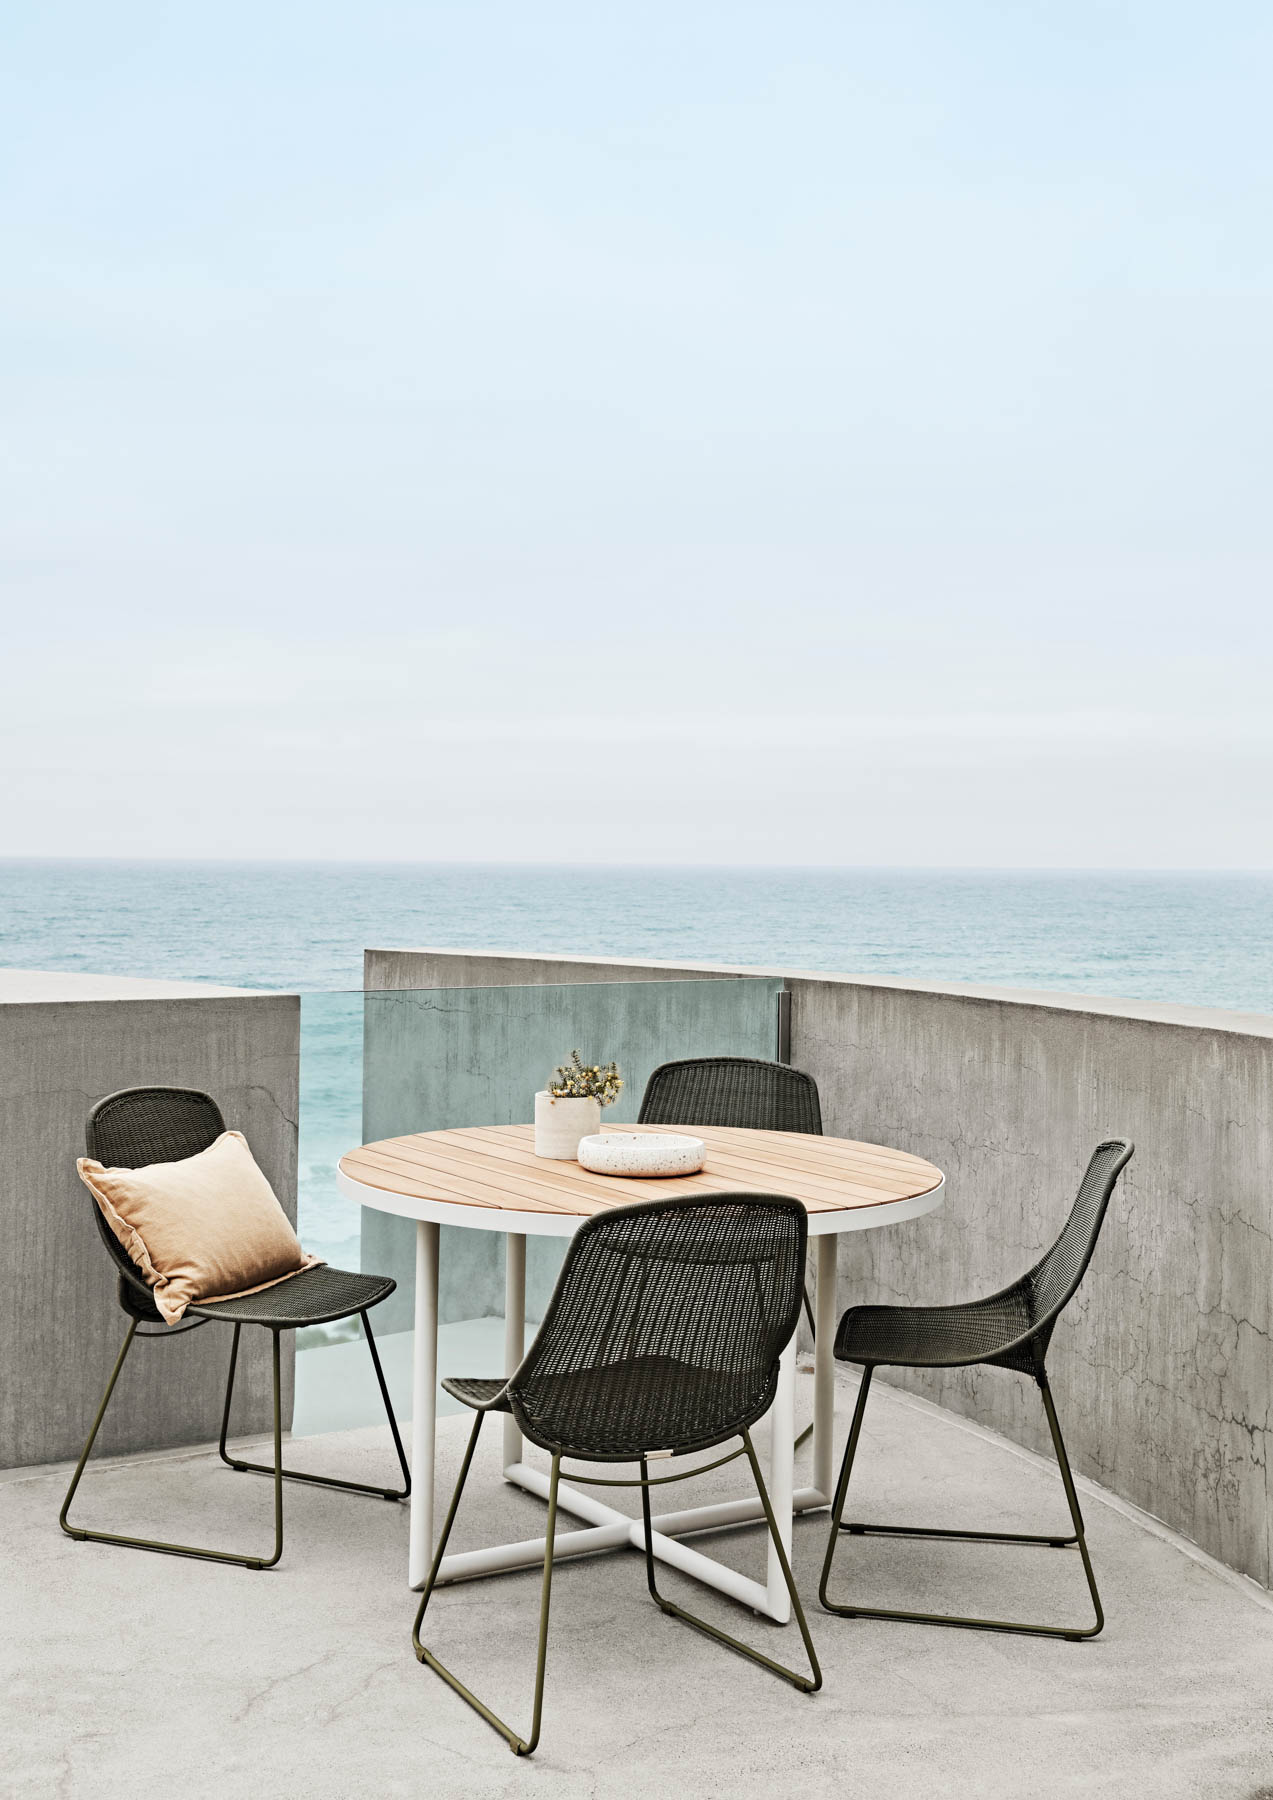 Furniture Gallery Dining-Chairs-Benches-Stools granada-scoop-closed-weave-dining-chairs-01